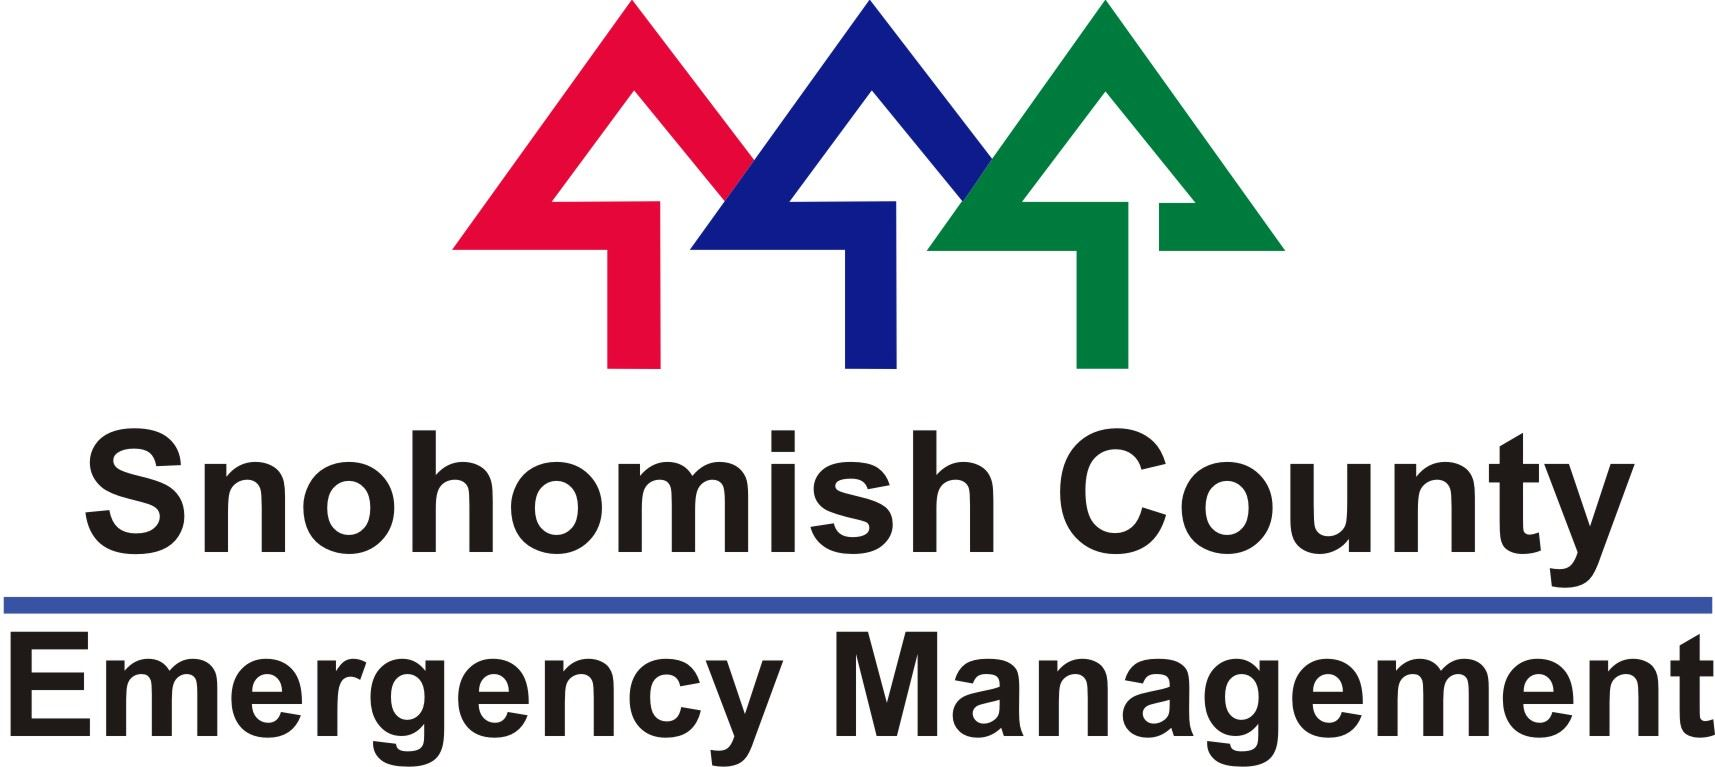 Snohomish County Department of Emergency Management logo